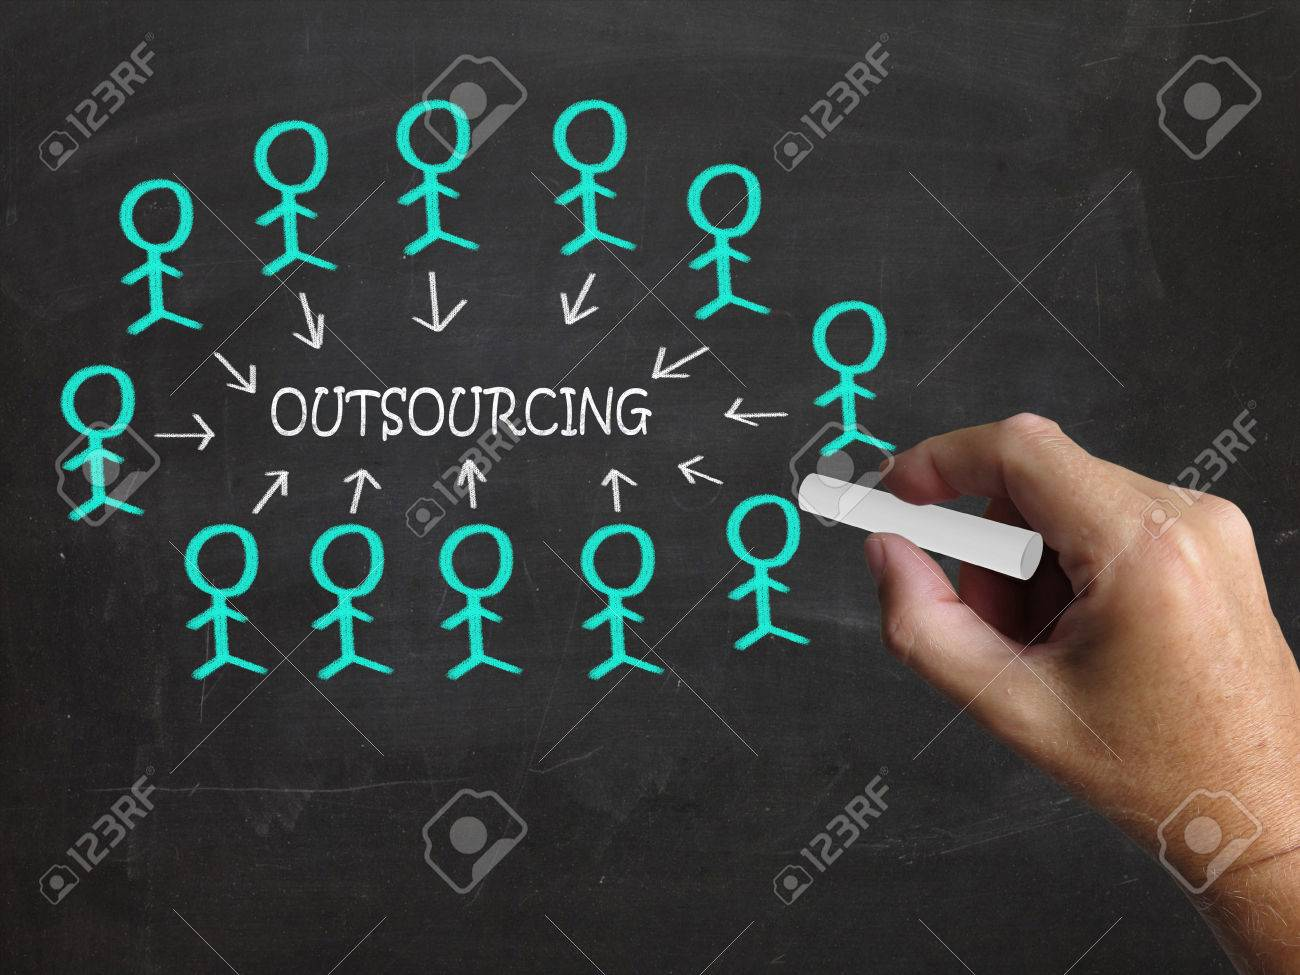 Outsourcing On Blackboard Meaning Subcontracting Independent